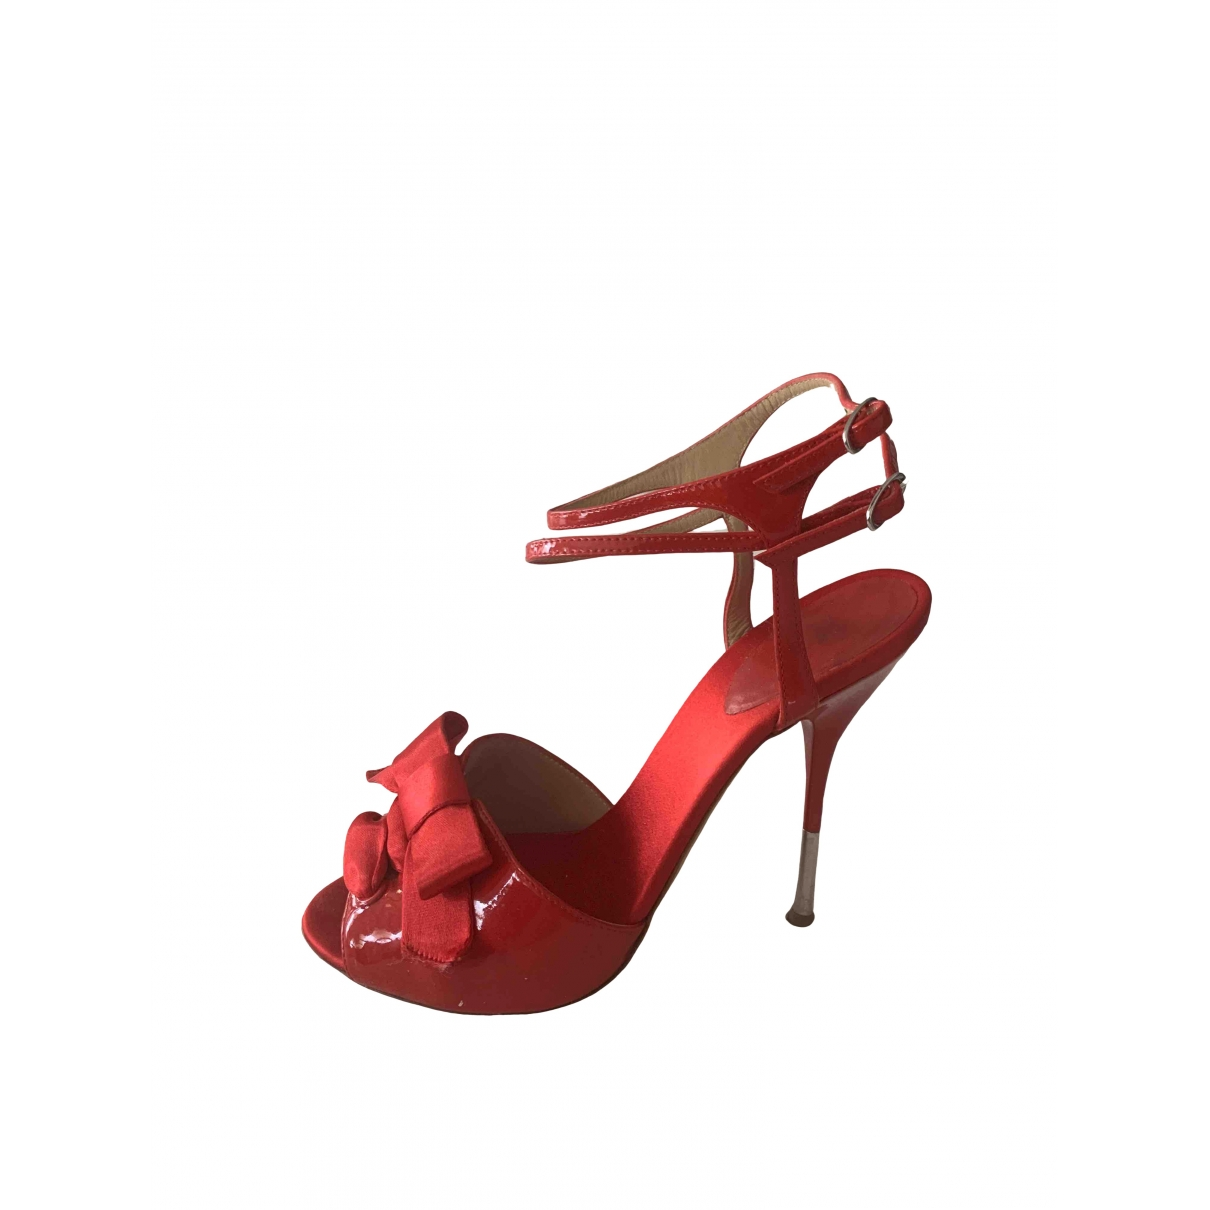 Giuseppe Zanotti \N Red Patent leather Sandals for Women 38 IT